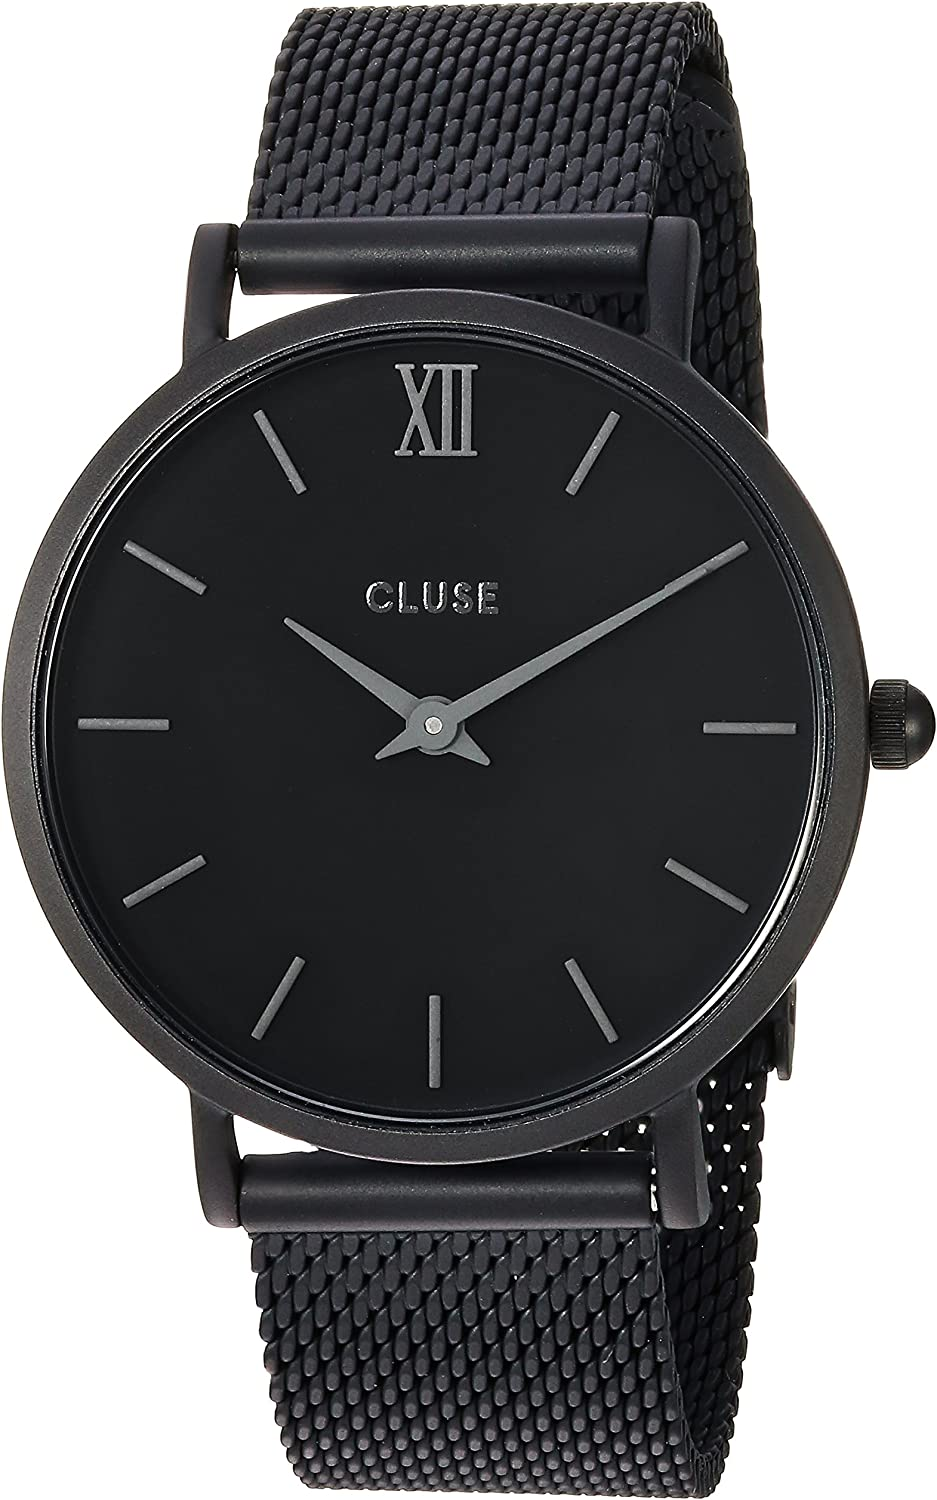 CLUSE Minuit Mesh Full Black CL30011 Women's Watch 33mm Stainless Steel Strap Minimalistic Design Casual Dress Japanese Quartz Elegant Timepiece